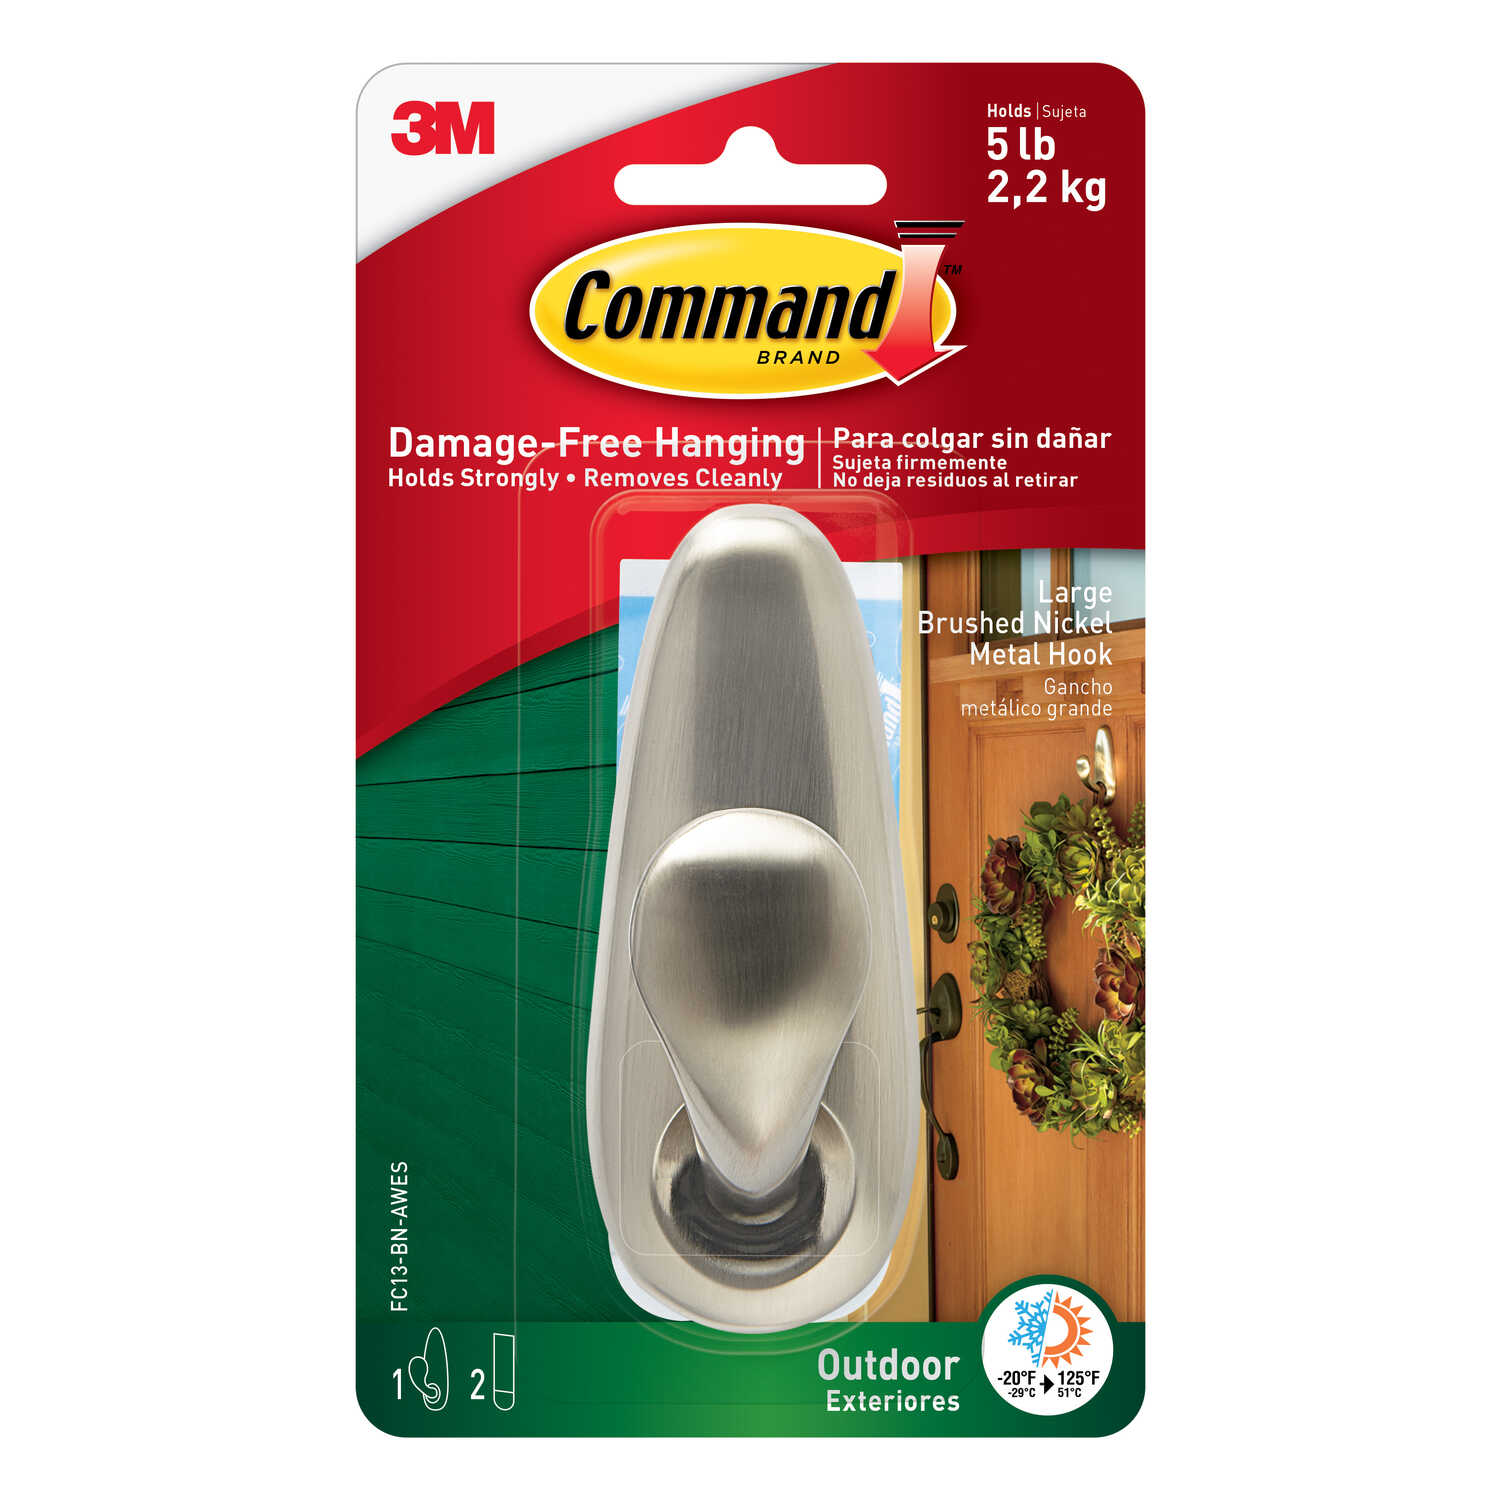 3M  Command  4-1/8 in. L Brushed Nickel  Metal  Large  Coat/Hat Hook  5 lb. capacity 1 pk Forever Cl